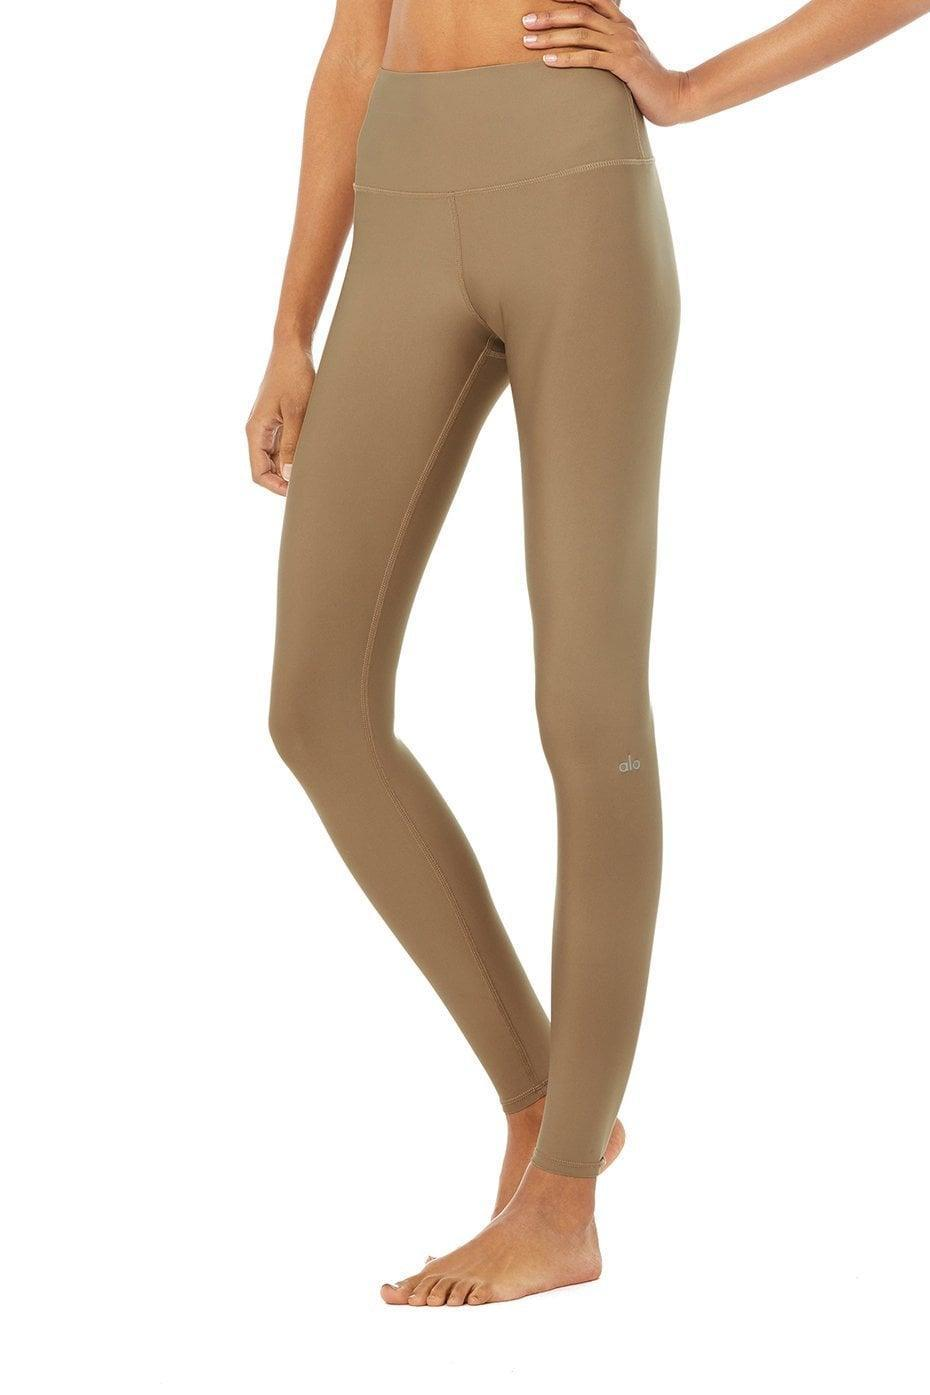 """<p>The <span>Alo High-Waist Airlift Legging</span> ($118) won't slide down during your workout. """"They make me feel supported, and make my legs and ankles look good,"""" Amanda Duckstein, a Club Pilates lead instructor in Scarsdale, NY, told POPSUGAR.</p>"""